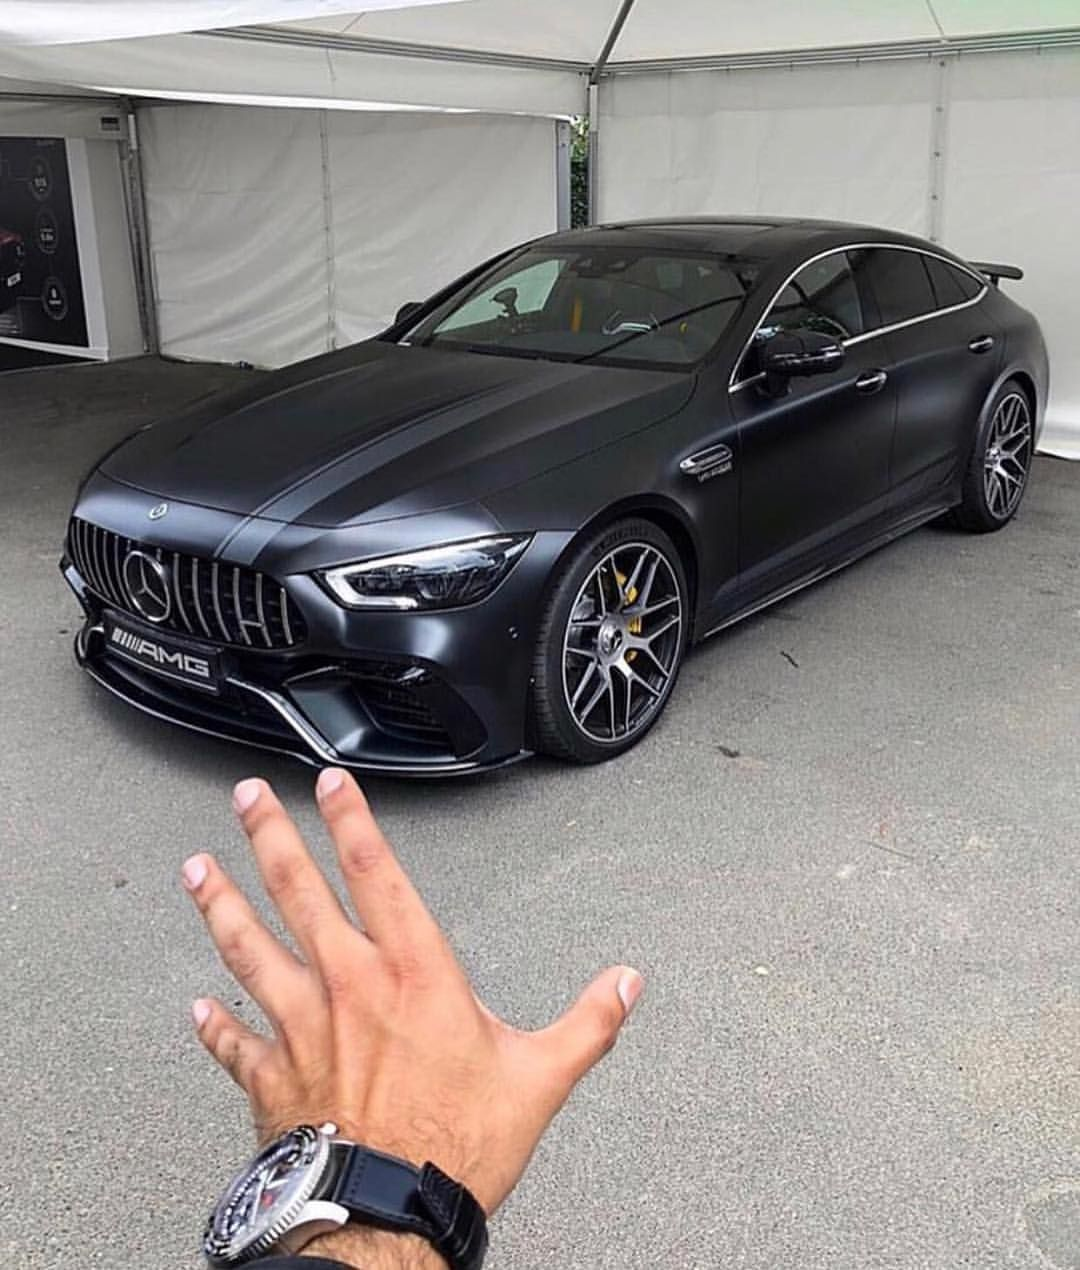 Mercedes Sports Cars New: Mercedes Brand Name Is A Trendy Brand Of Luxury Car Firm